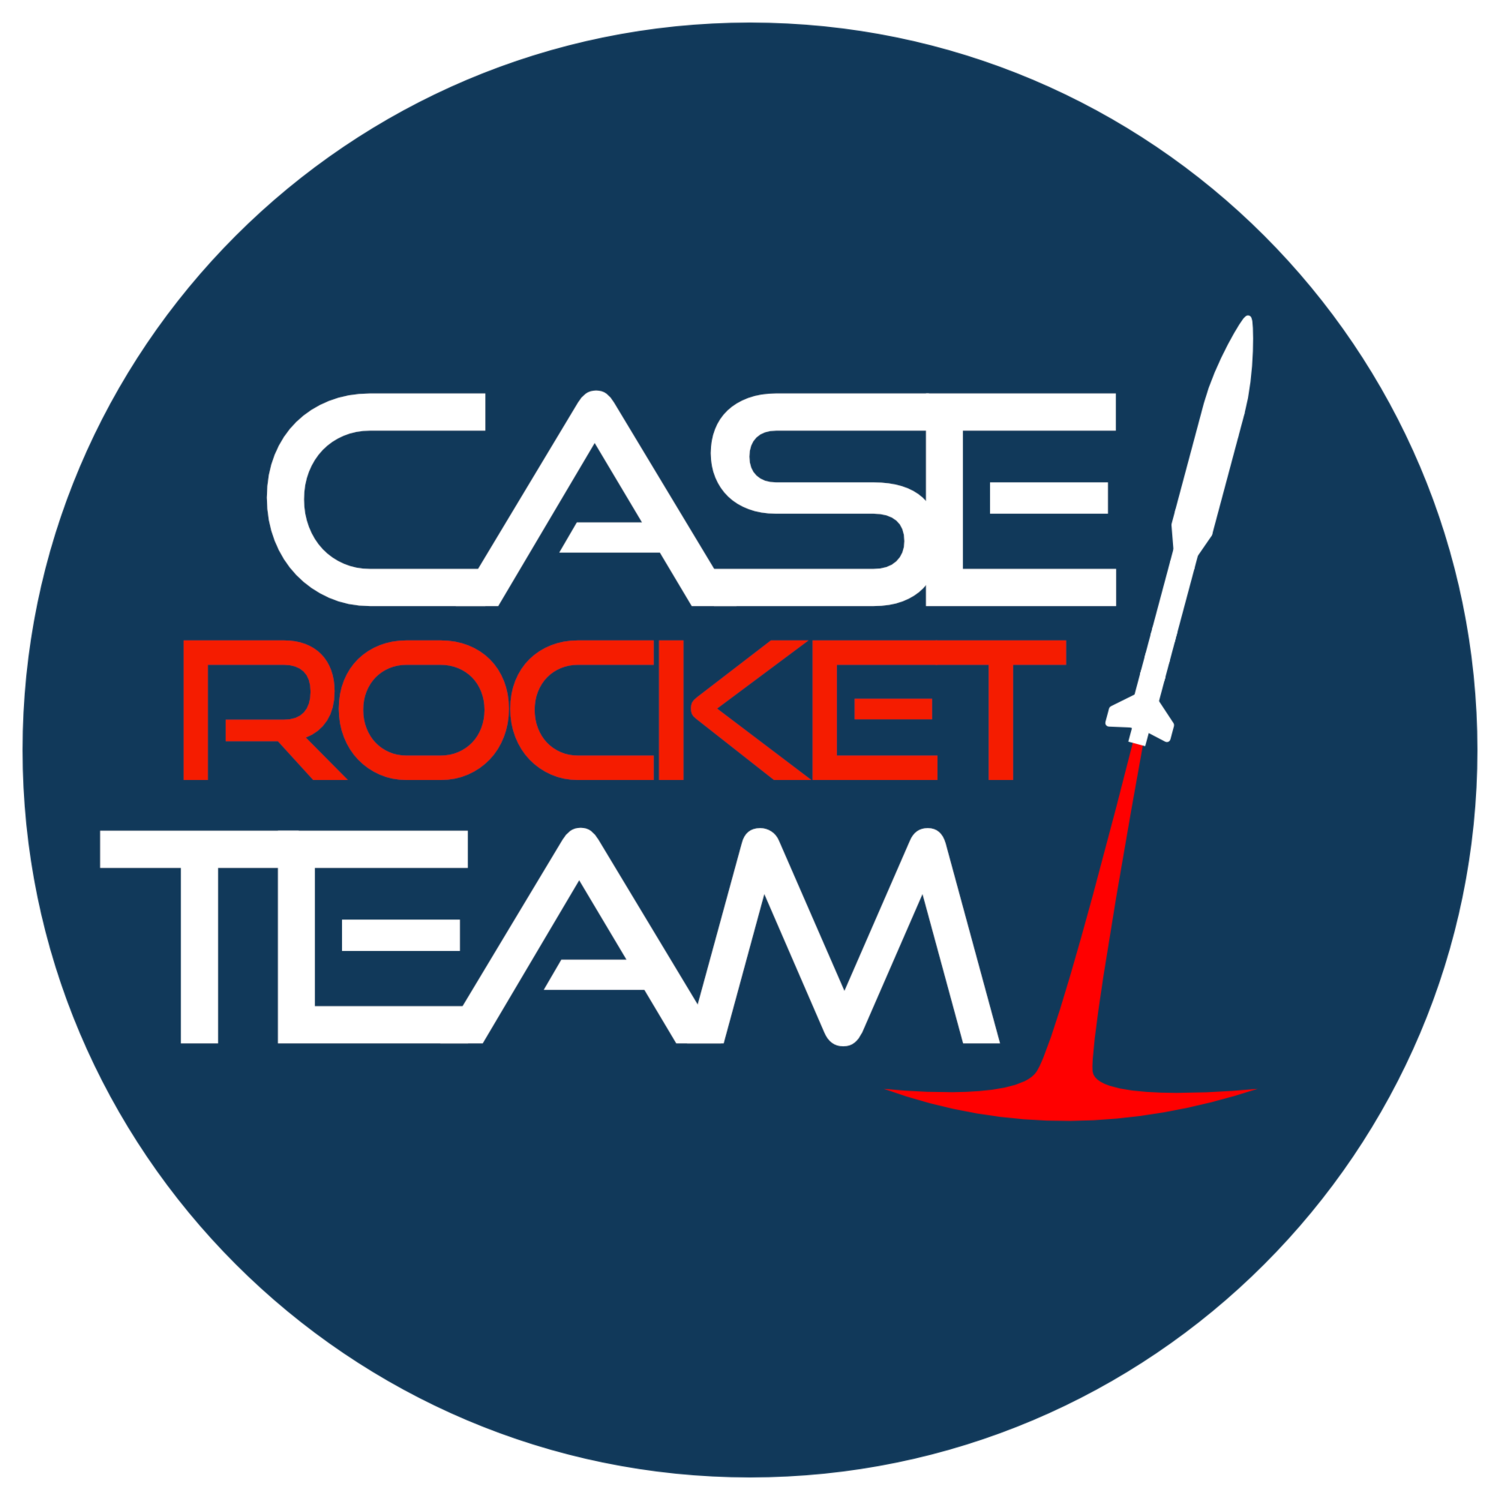 Case Rocket Team